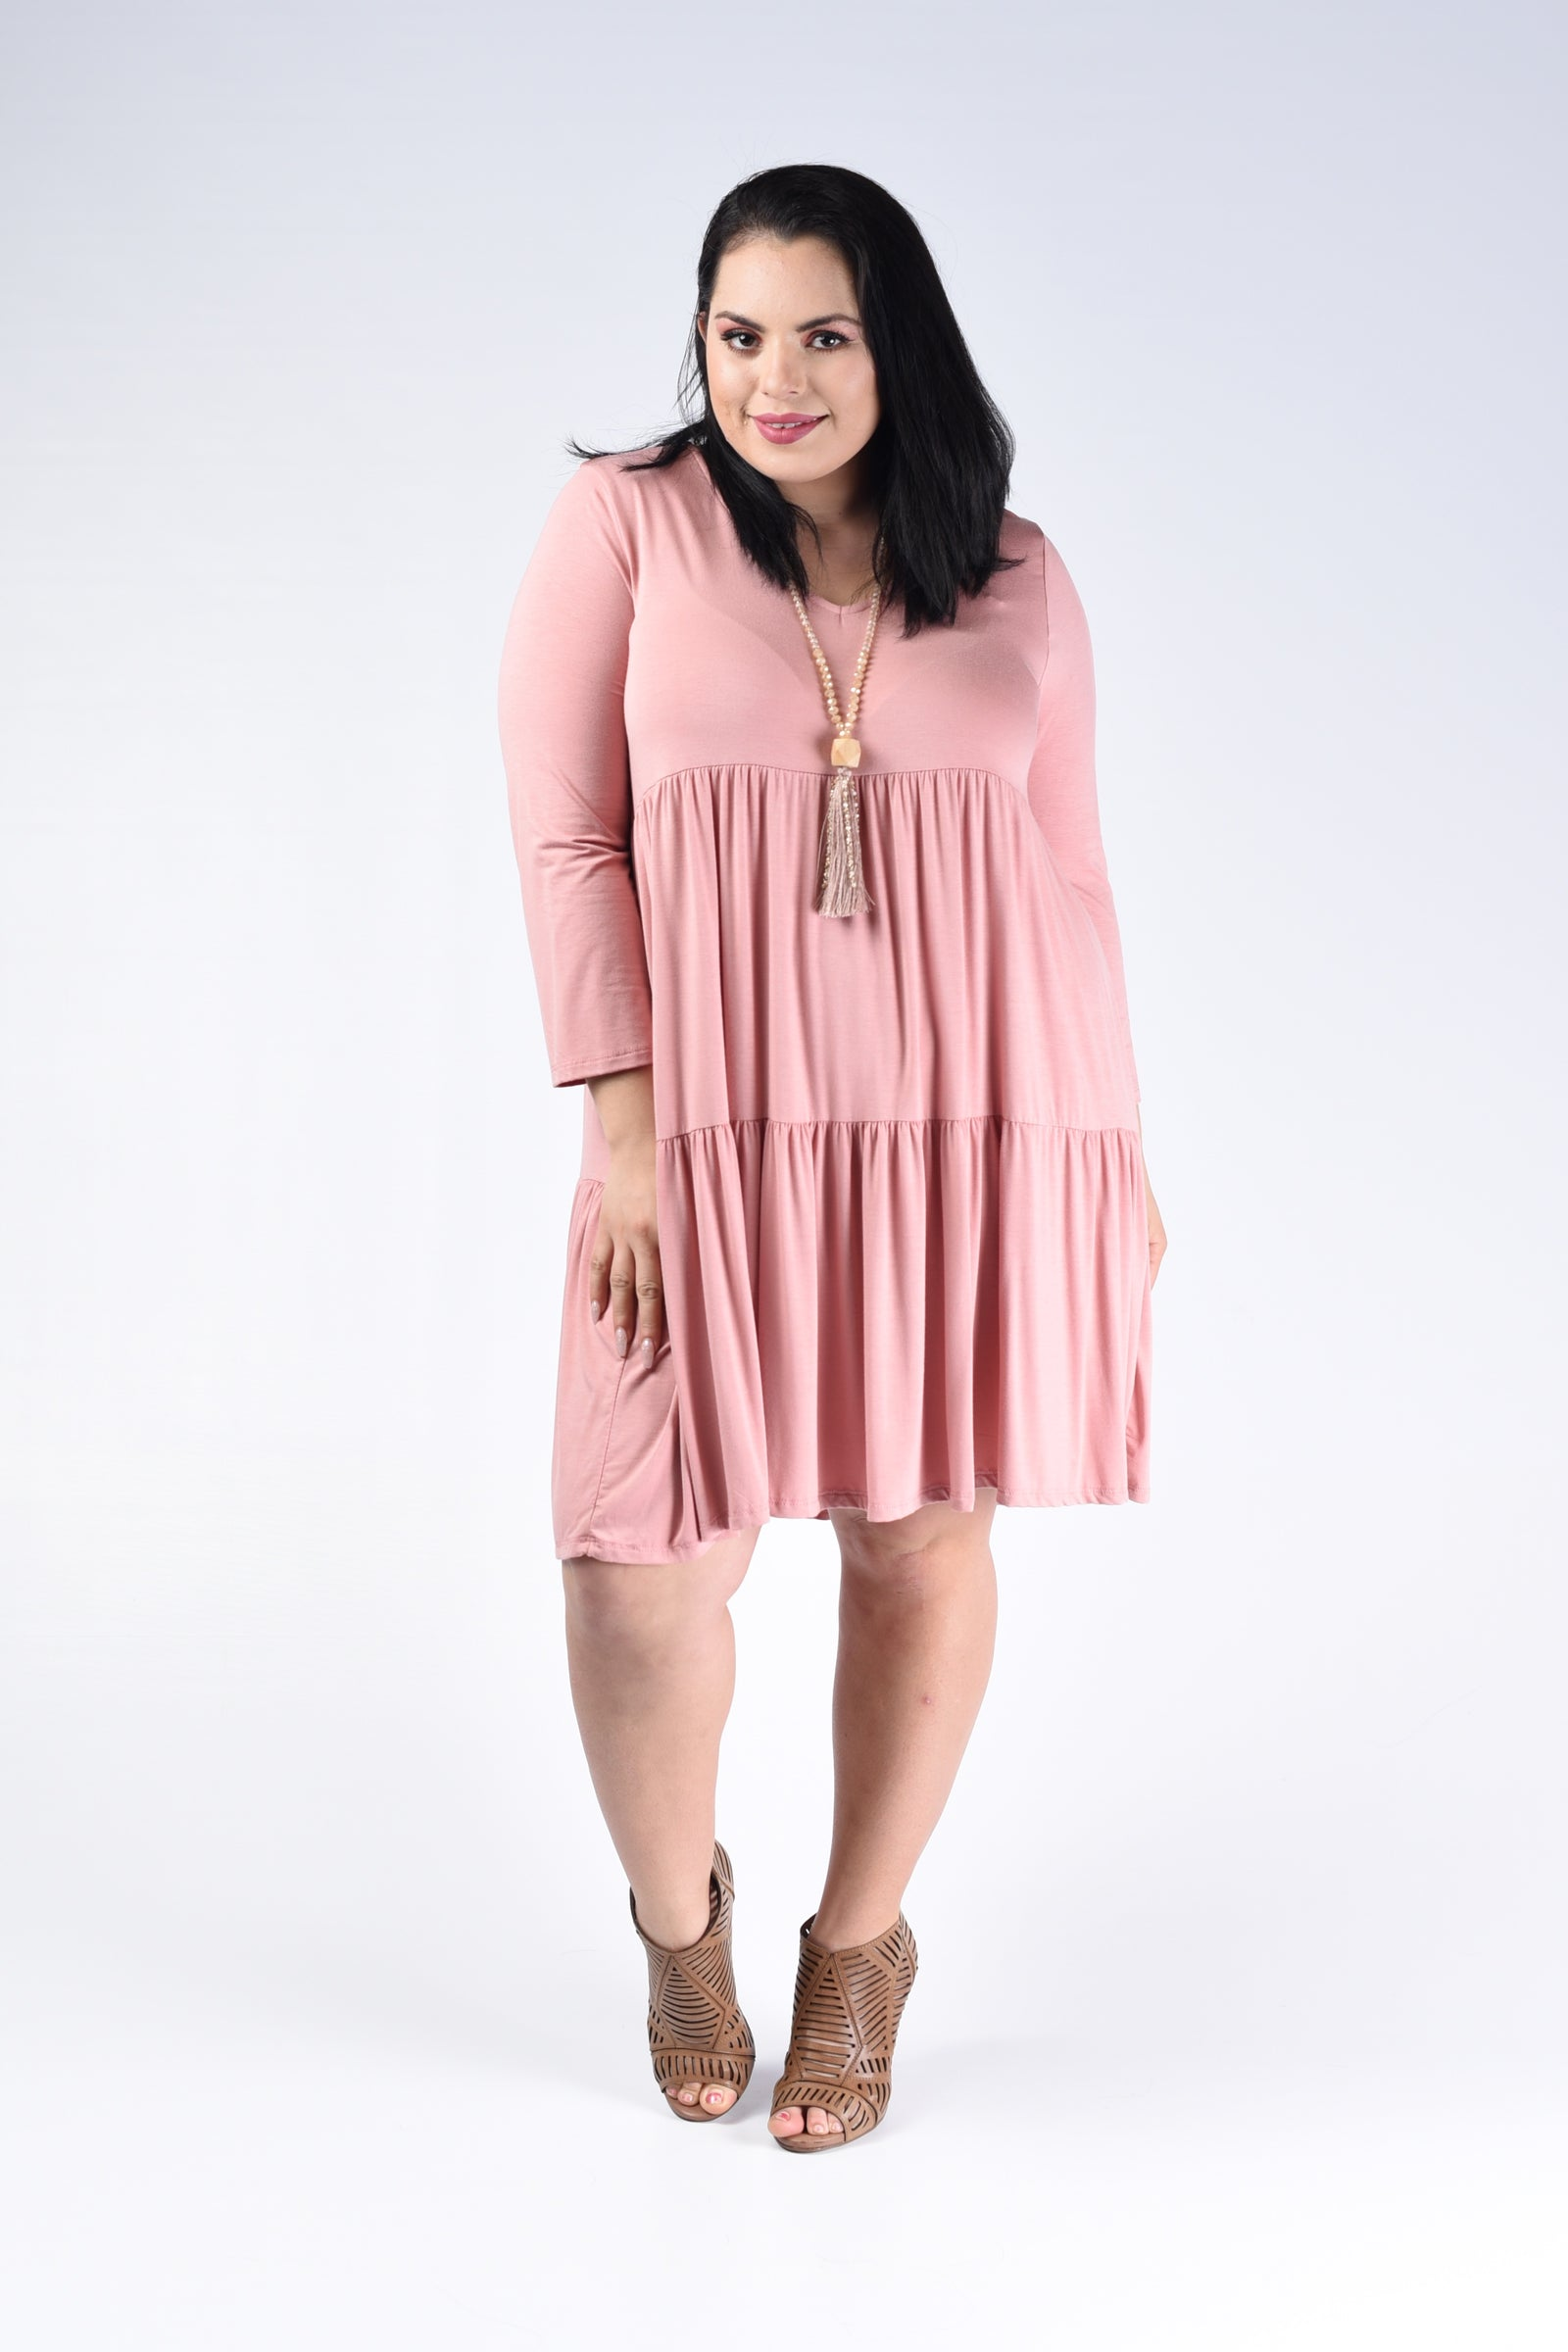 Dusty Pink Tiered V-Neck Dress - www.mycurvystore.com - Curvy Boutique - Plus Size